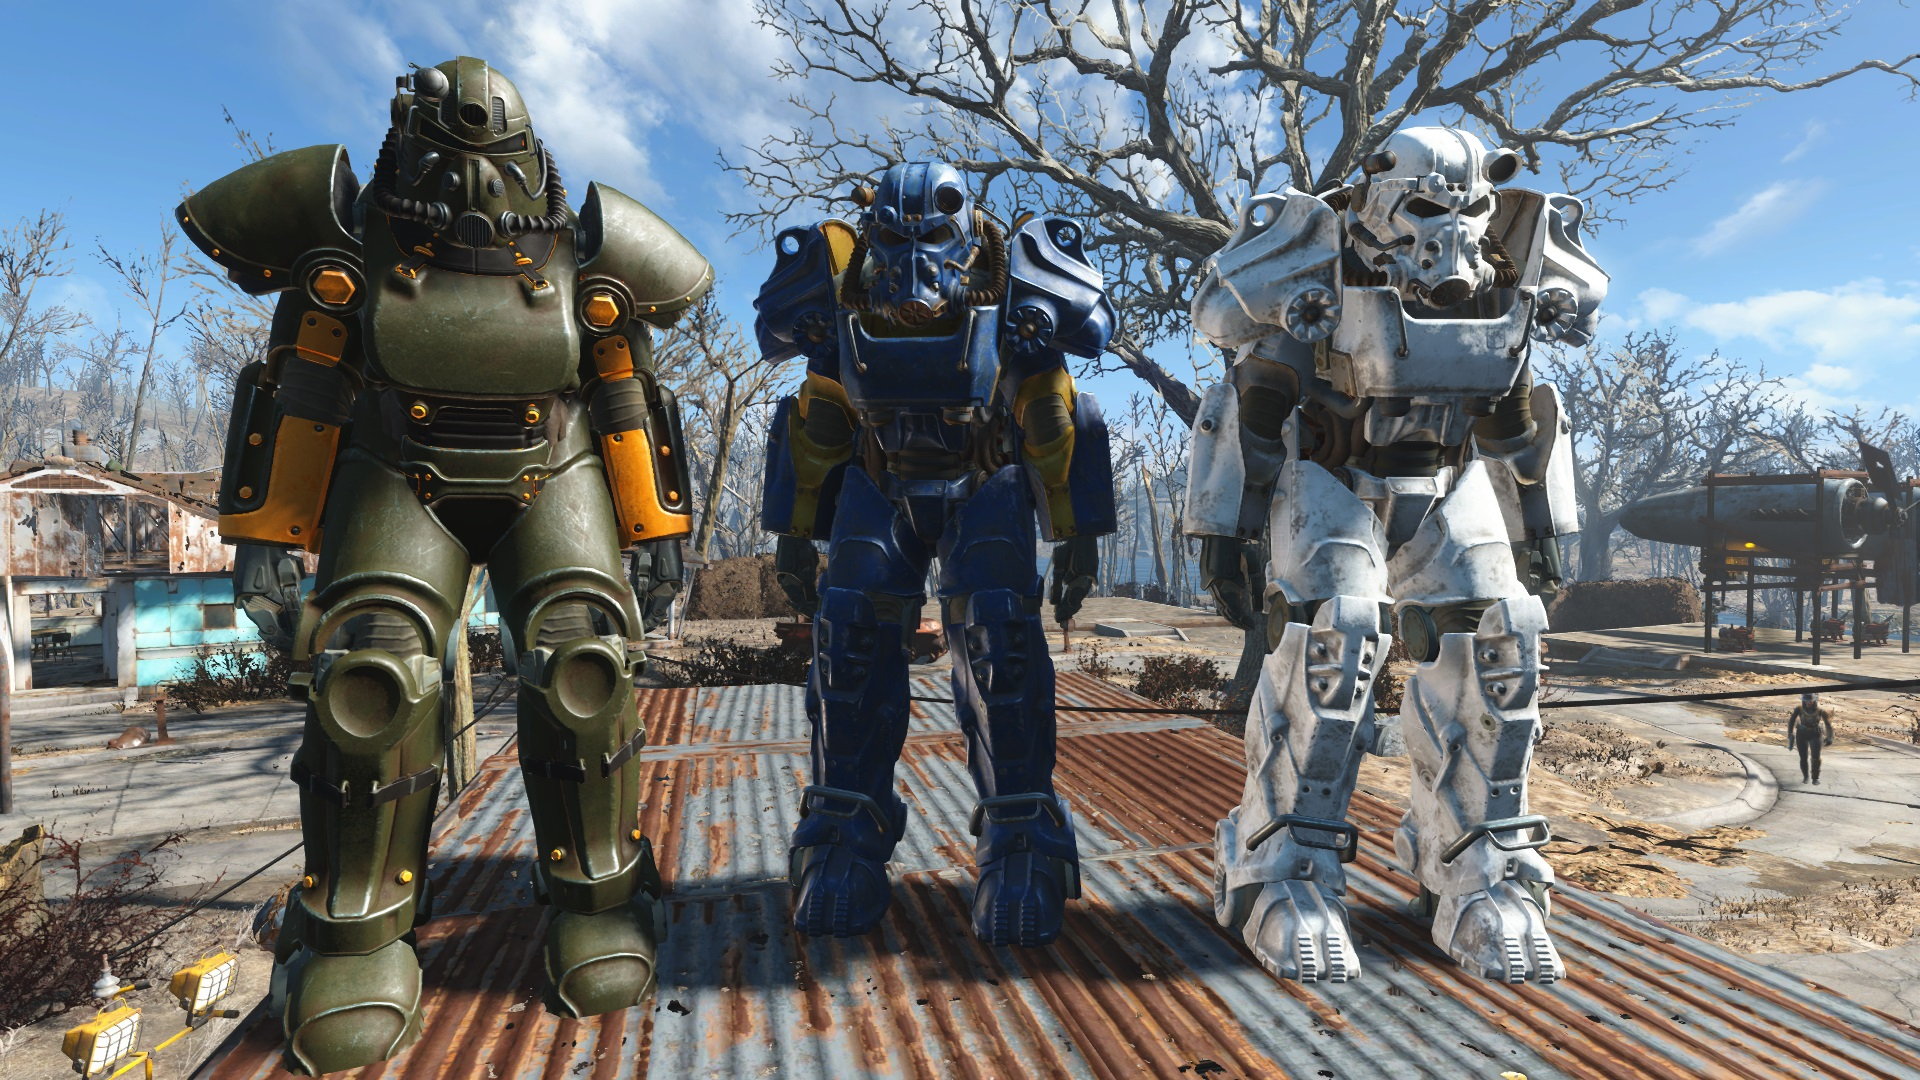 Xbox One Fallout 4 Power Armor Mods Wiring Diagrams The Stereophone Based On That Wm2002 Designs Drives Scheme Dave Locations Map X Clutter